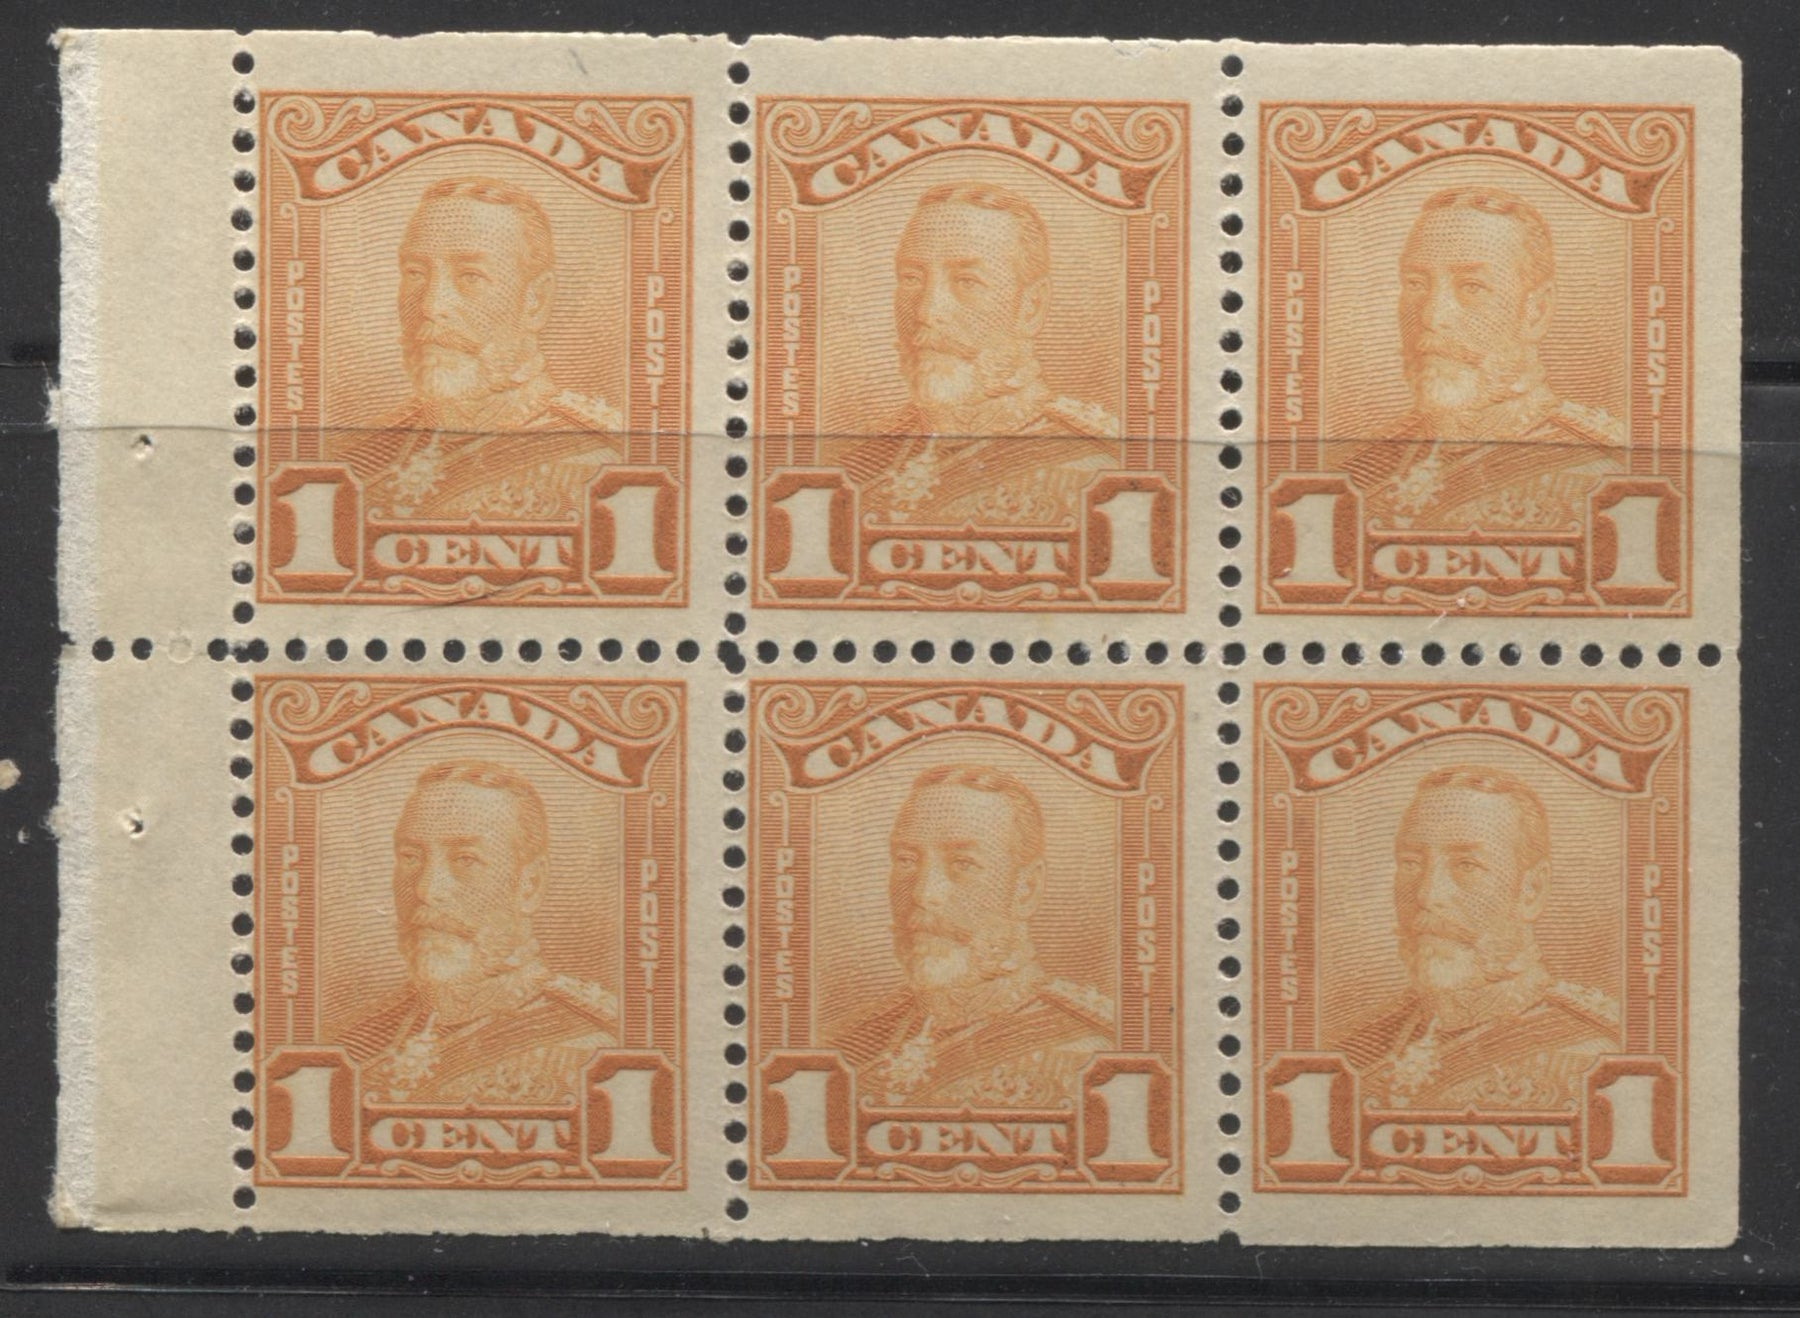 Canada #149a 1c Orange King George V,  1928-30 Scroll Issue, A Fresh and Fine NH Booklet Pane of 6